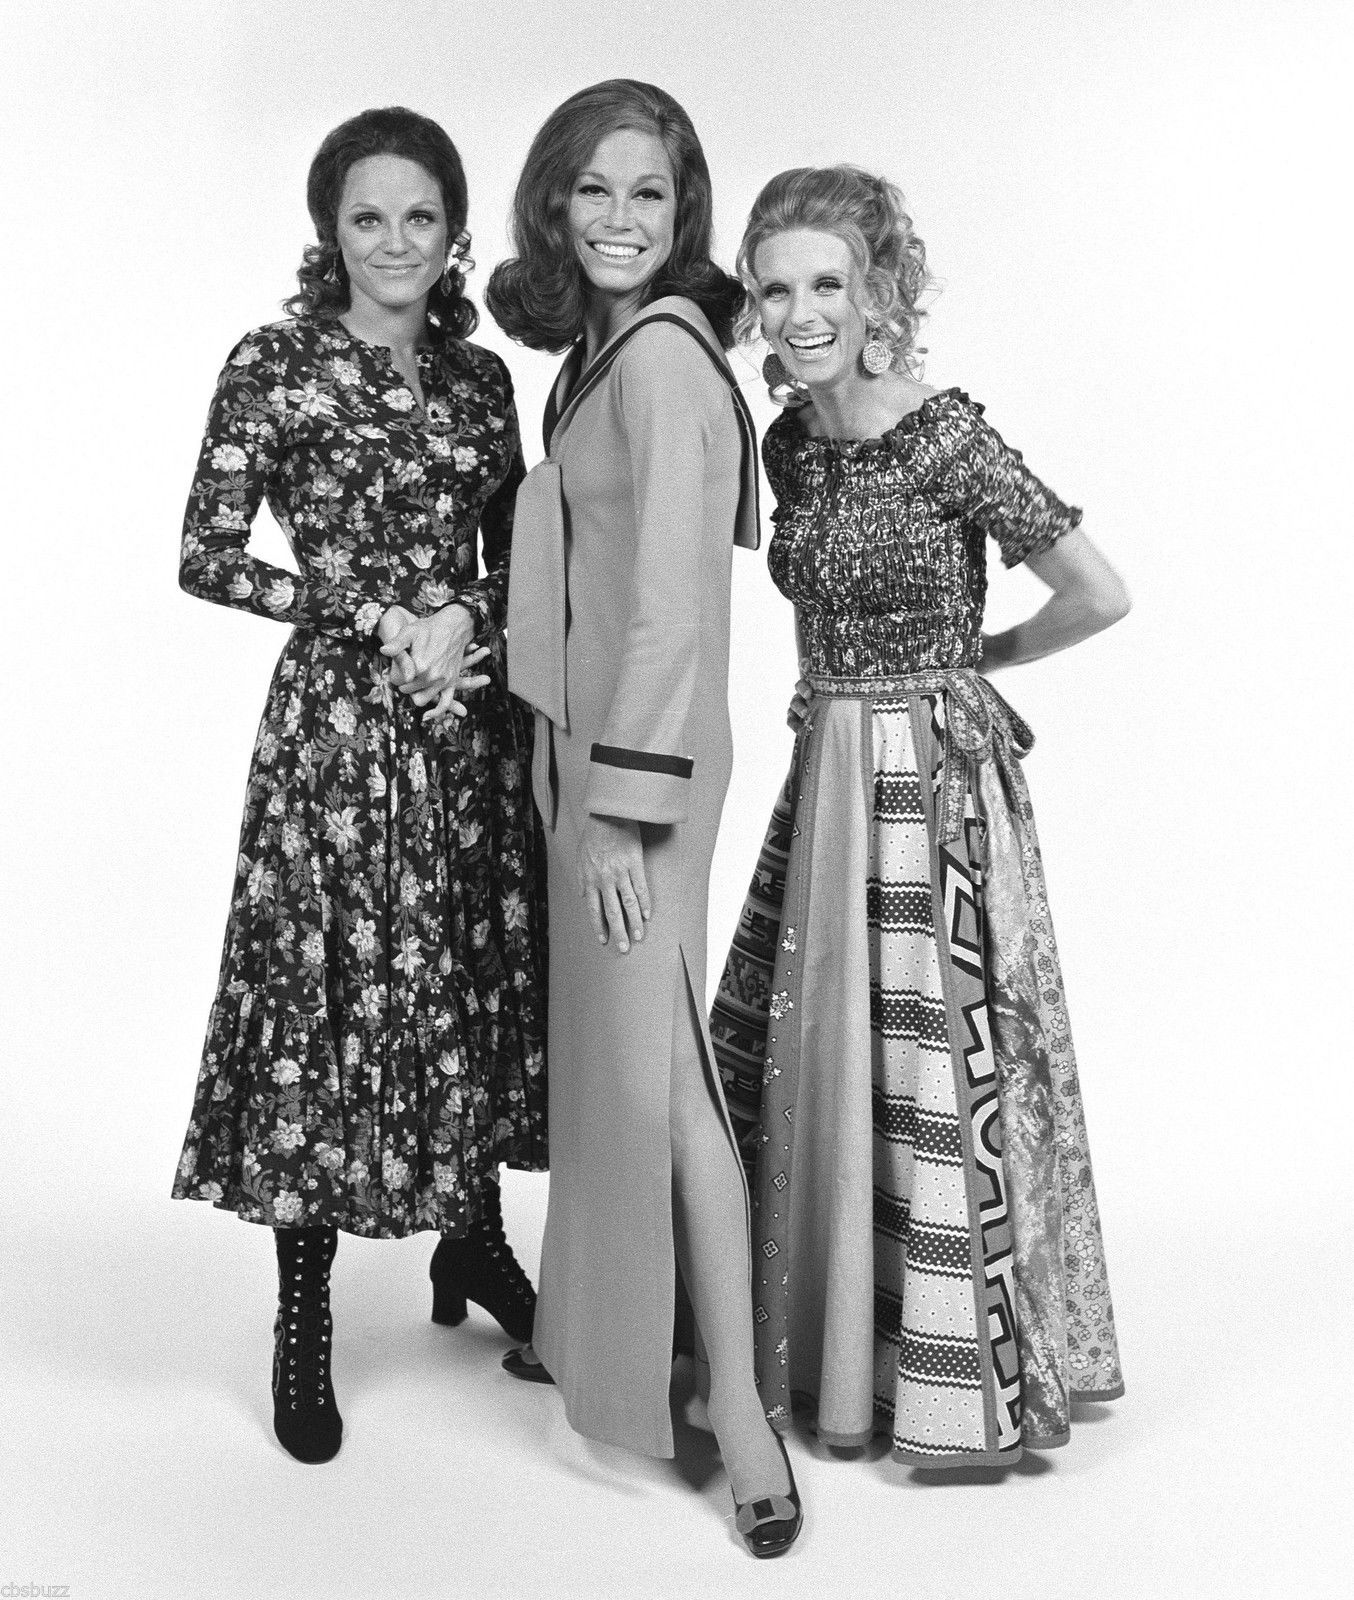 THE_MARY_TYLER_MOORE_SHOW_-_TV_SHOW_PHOTO_91